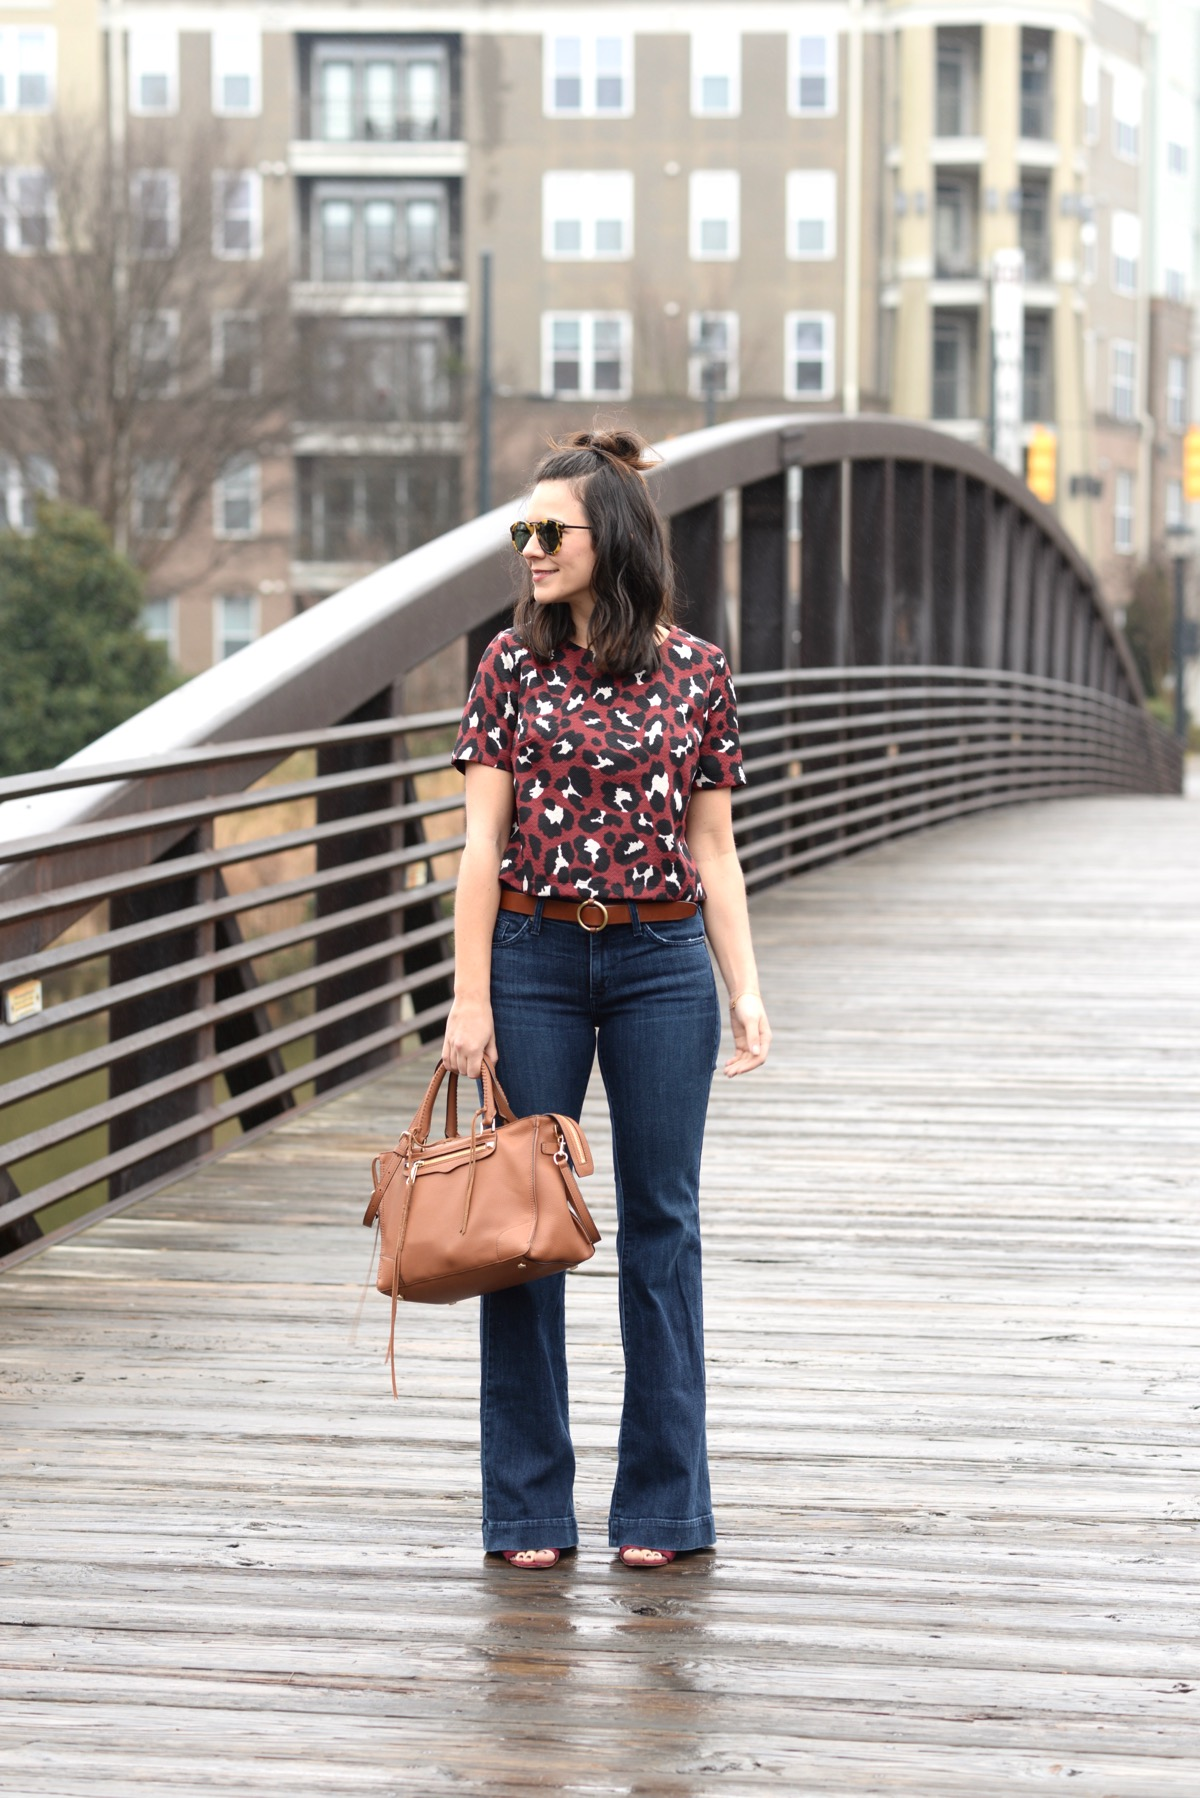 How To Style A Crop Top With Wide Leg Jeans